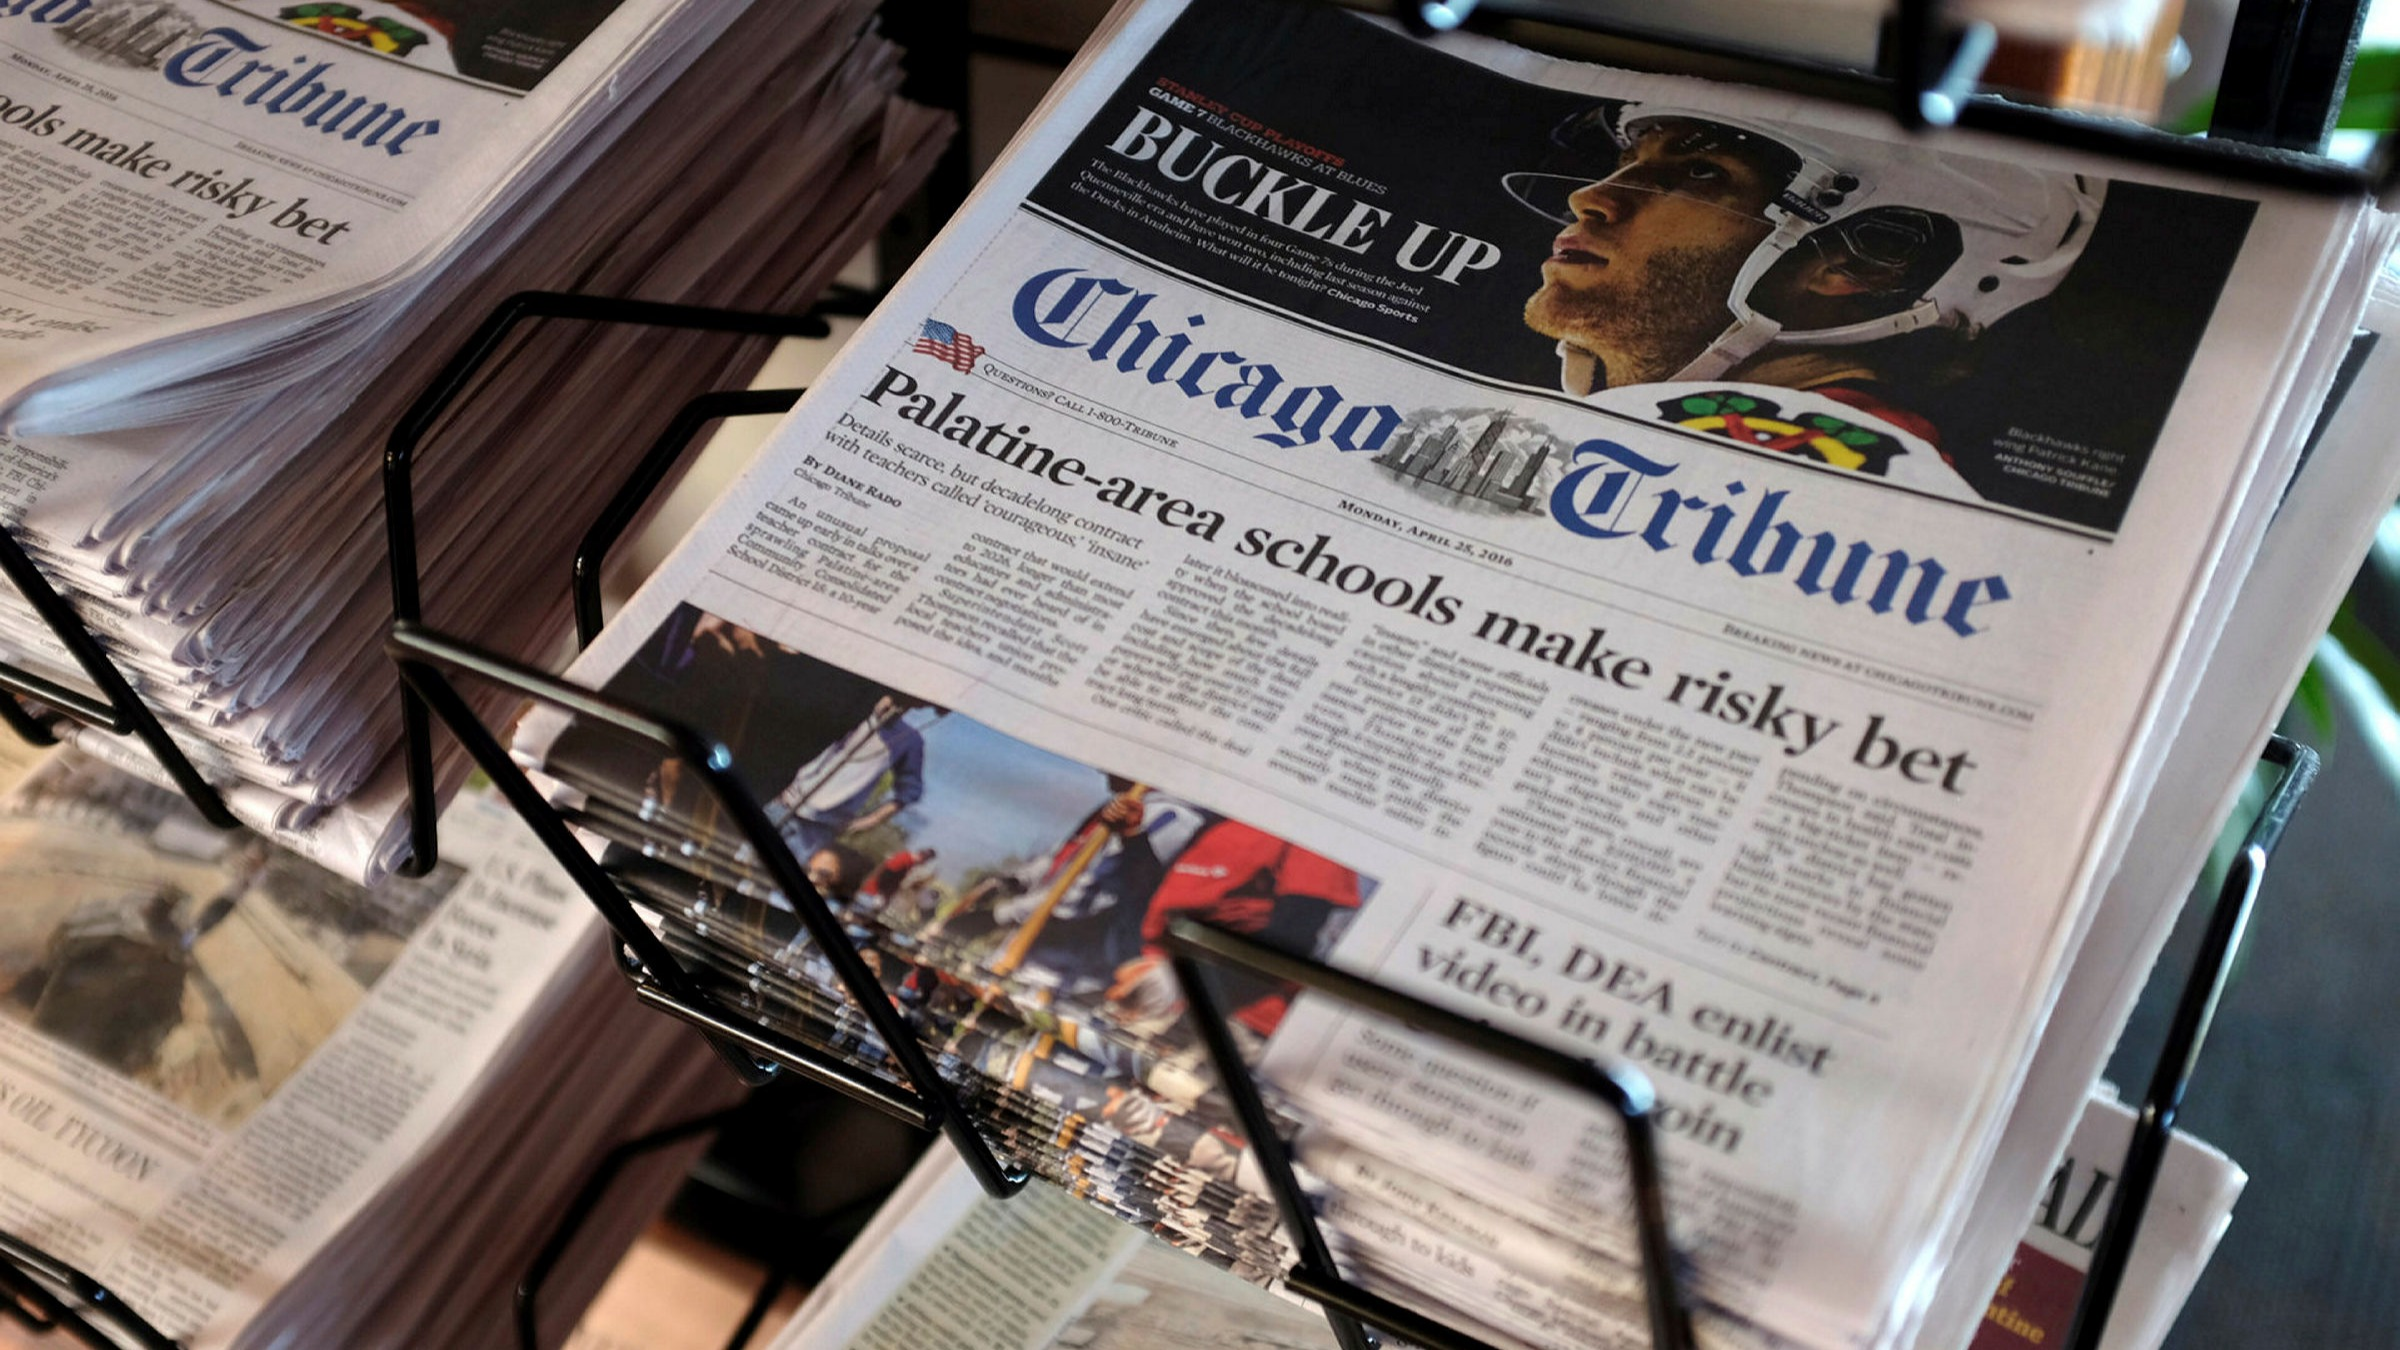 ft.com - Anna Nicolaou in New York - Control of Tribune media group looks set to go to hedge fund